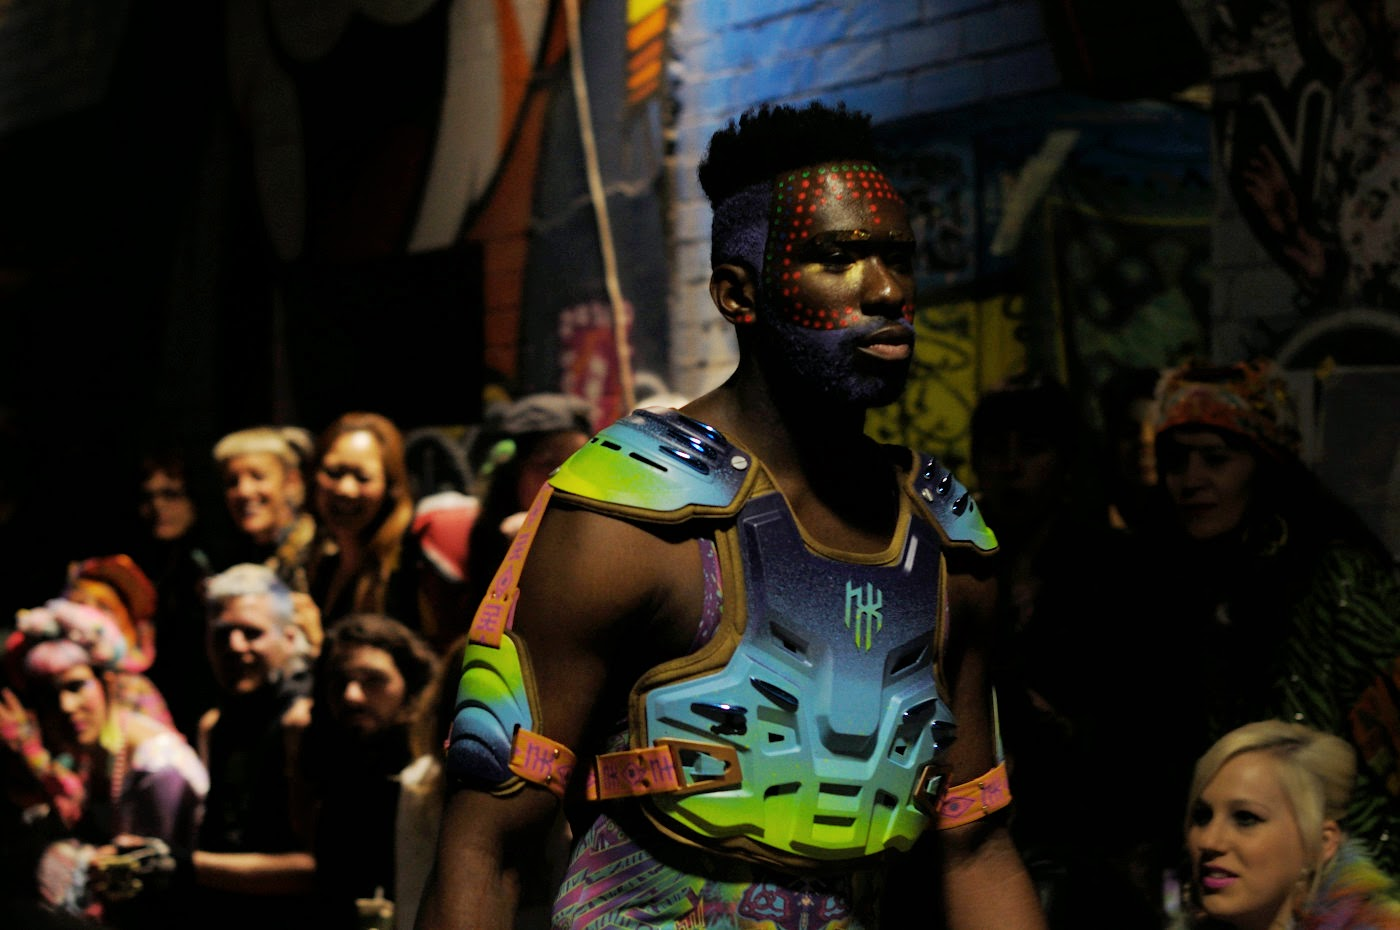 Nixi,killick, nixi killick, colour tribe, MSFW, Melbourne Spring Fashion Week, tim Macauley, runway, show, neon, Fluoro, fluorescent, 2014, designs